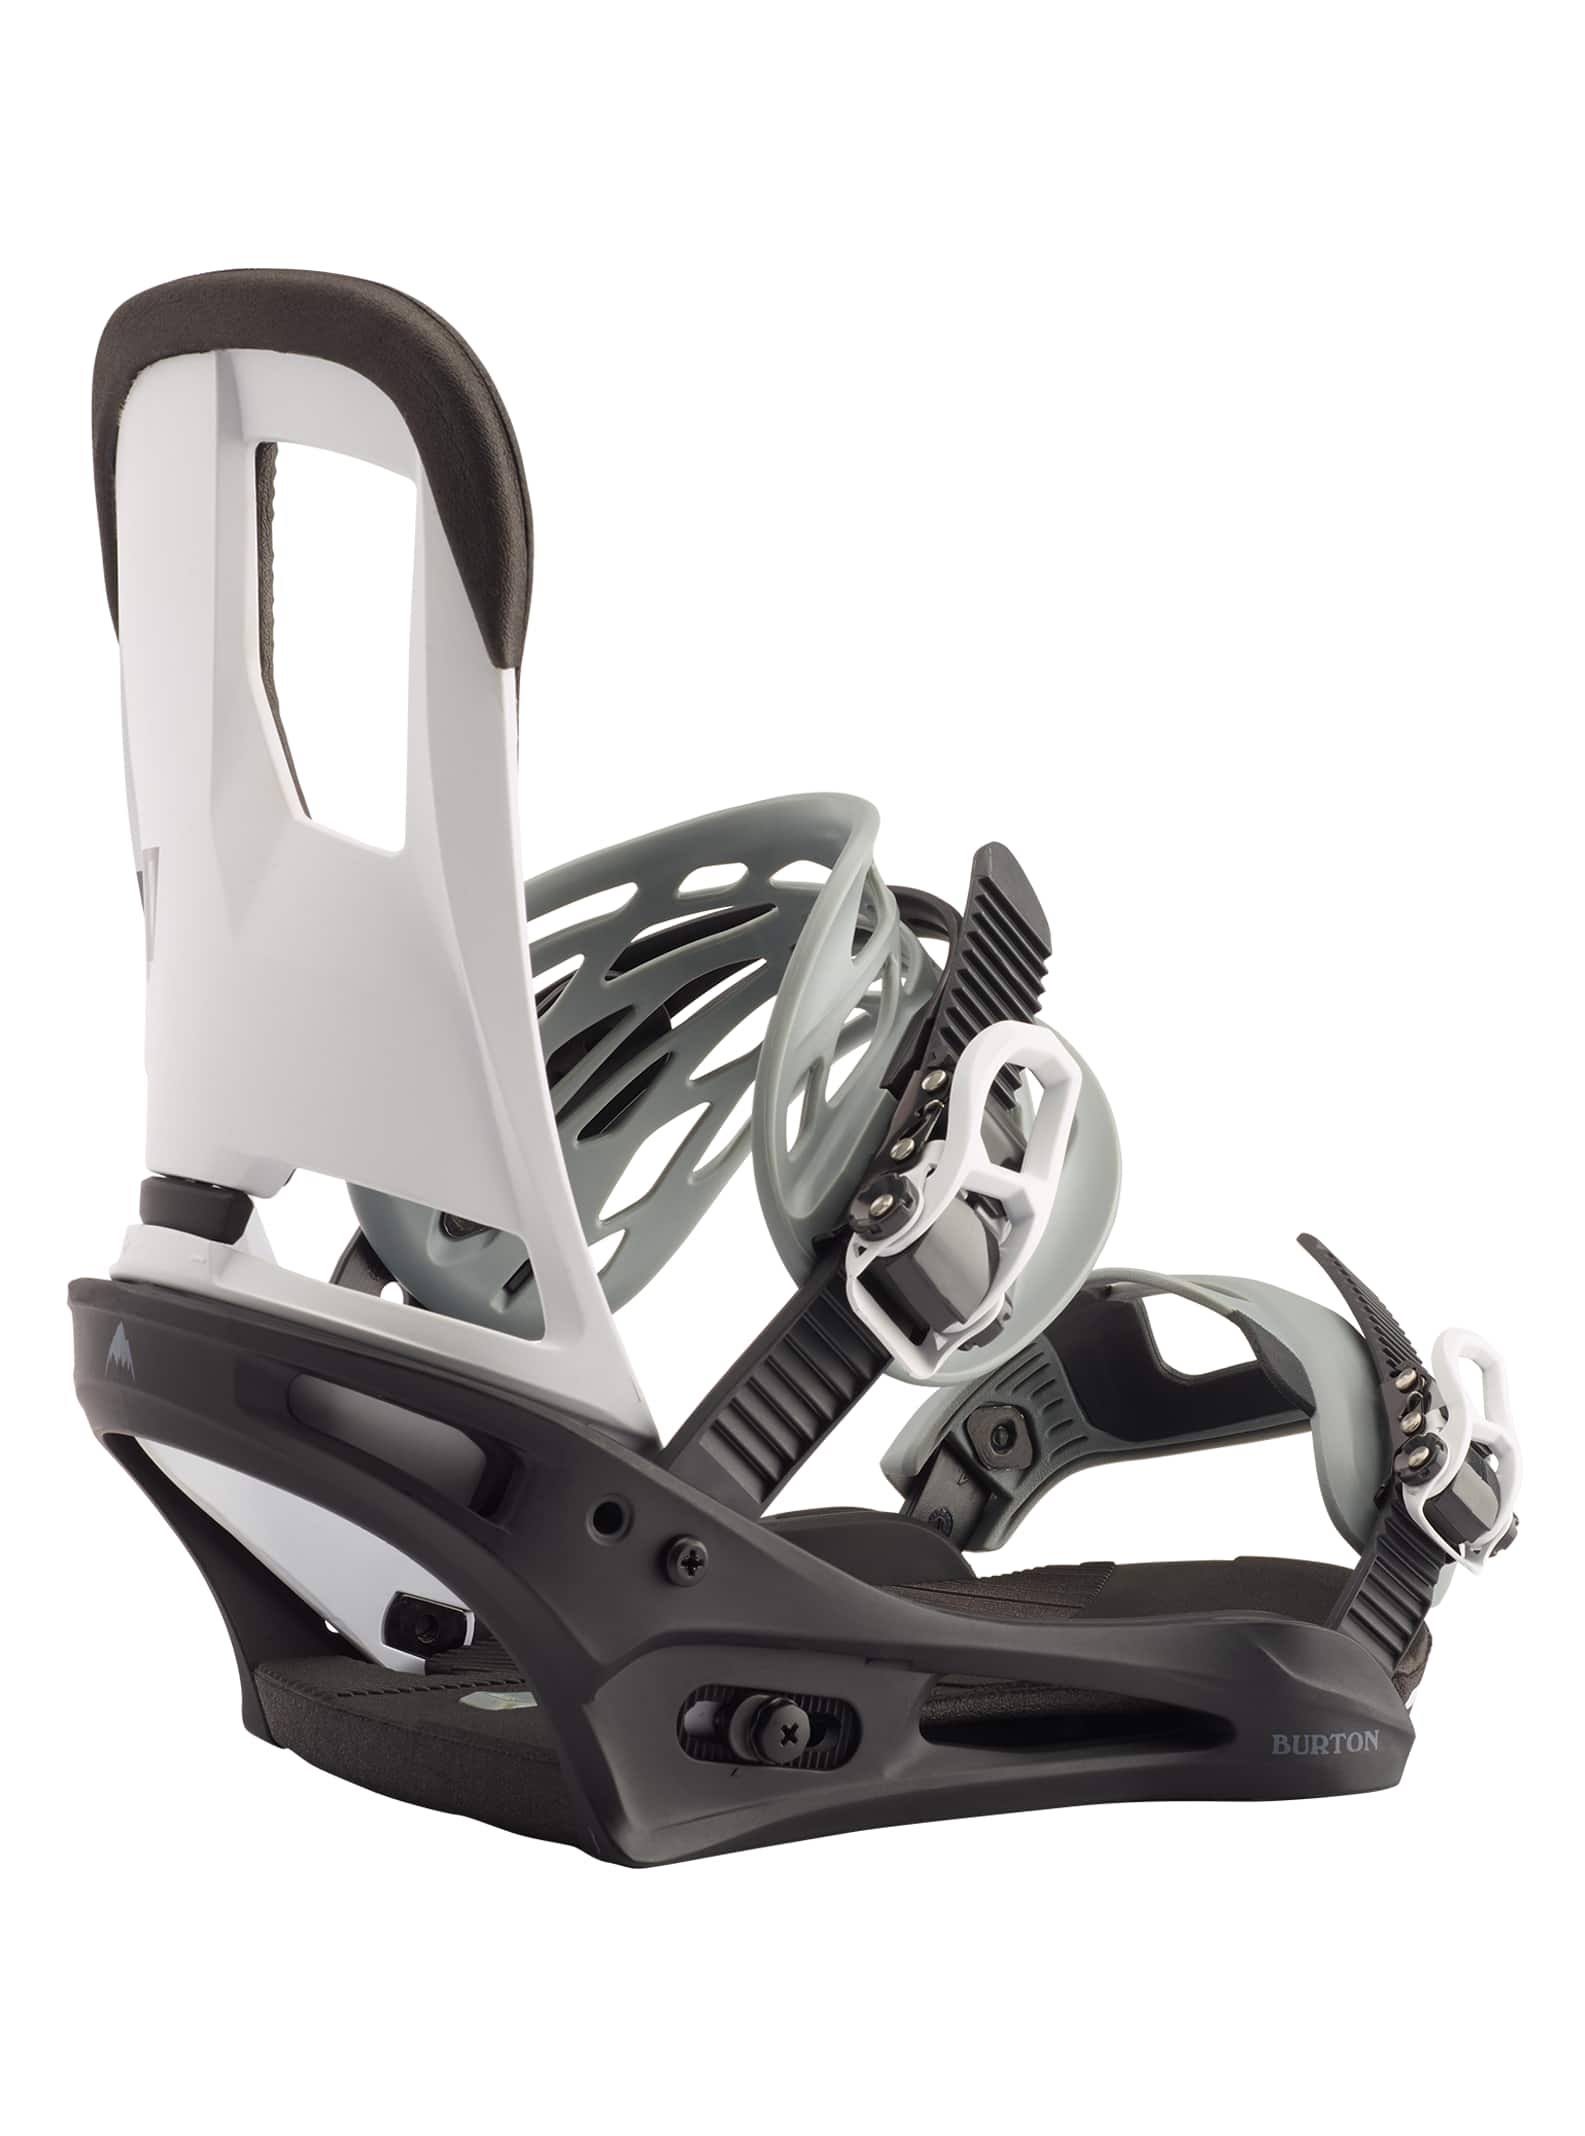 Burton Cartel 2020 Snowboard Bindings - Black/White